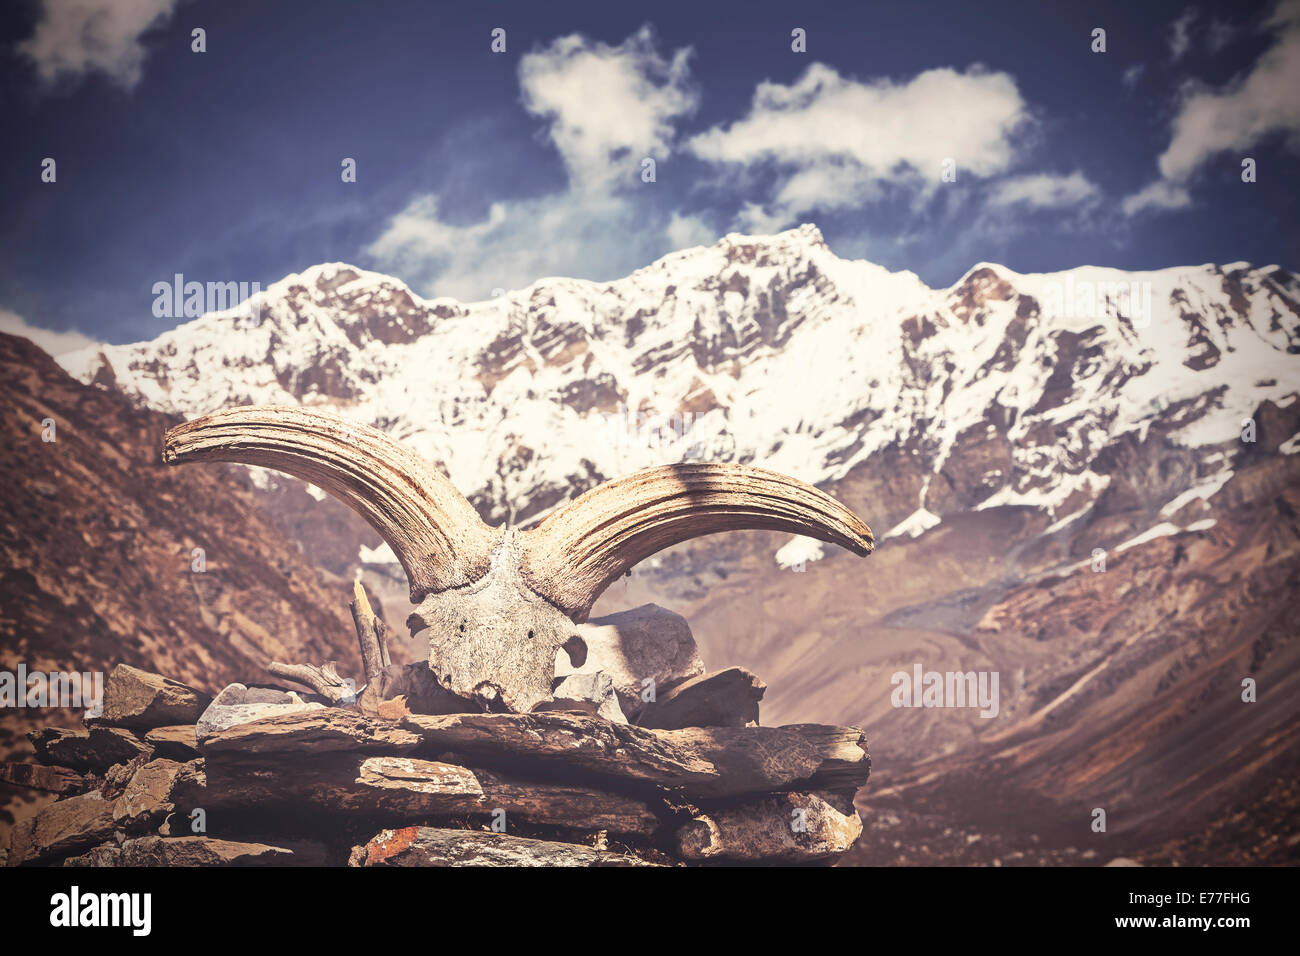 Vintage picture of yak's skull with Himalaya mountains in background, Nepal - Stock Image